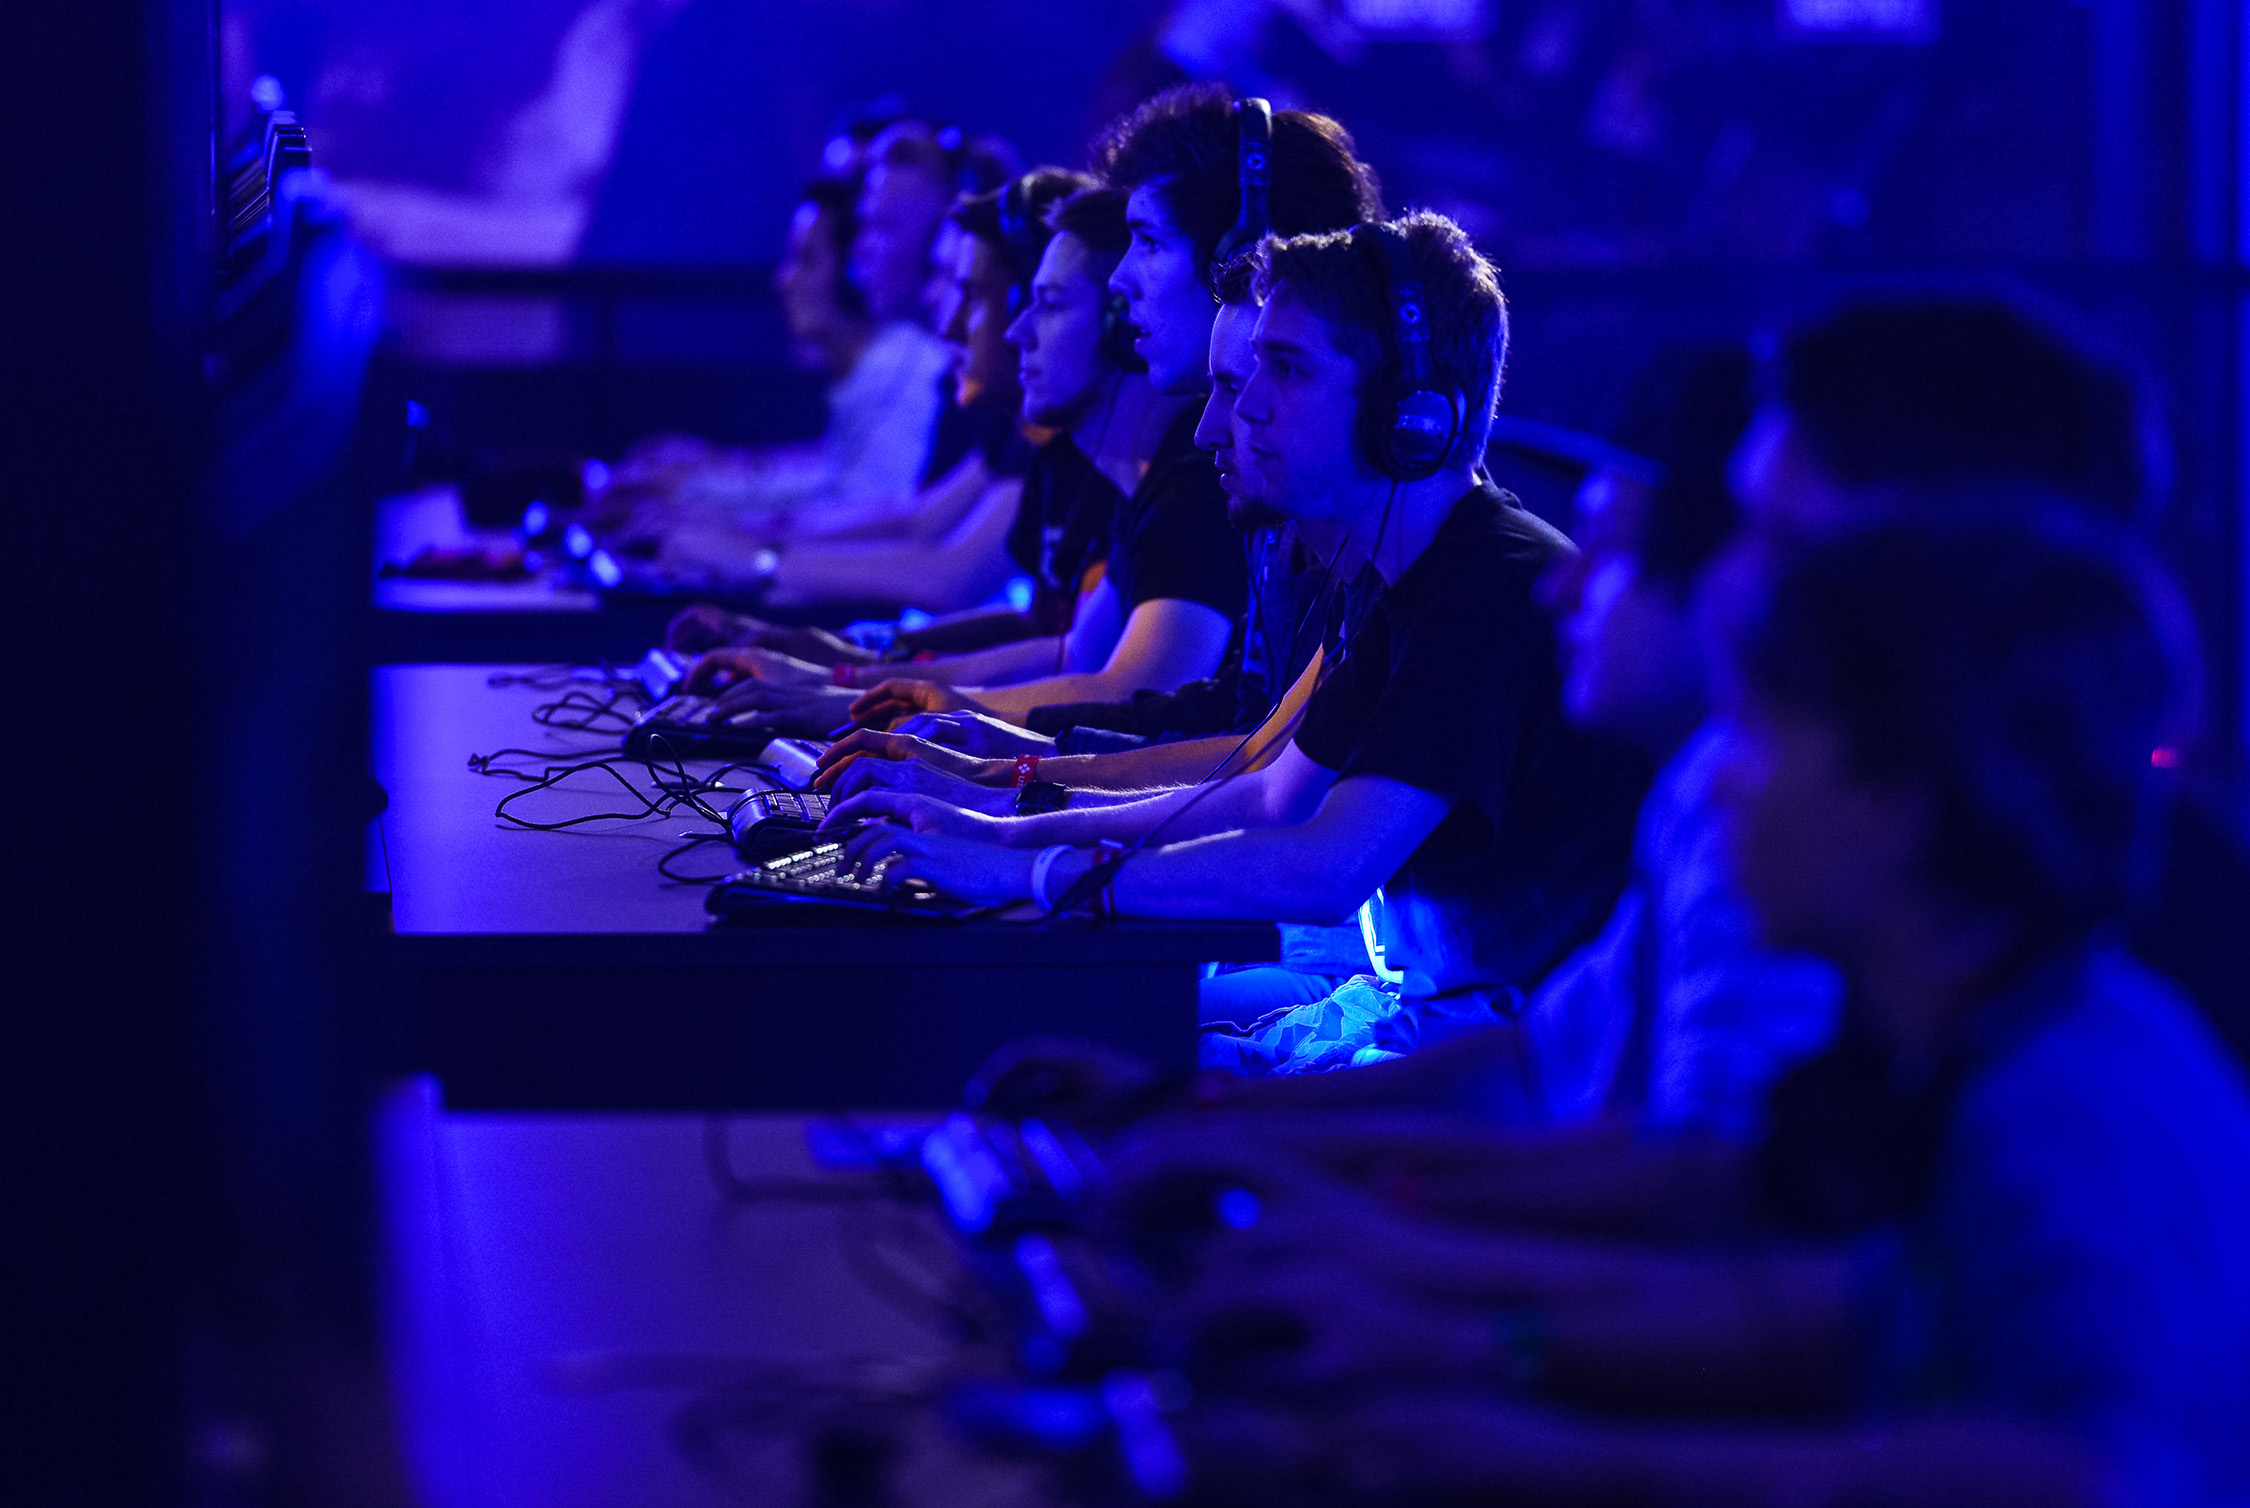 Twitch A Step Closer To Dominating The Gaming Industry - Here the reason why